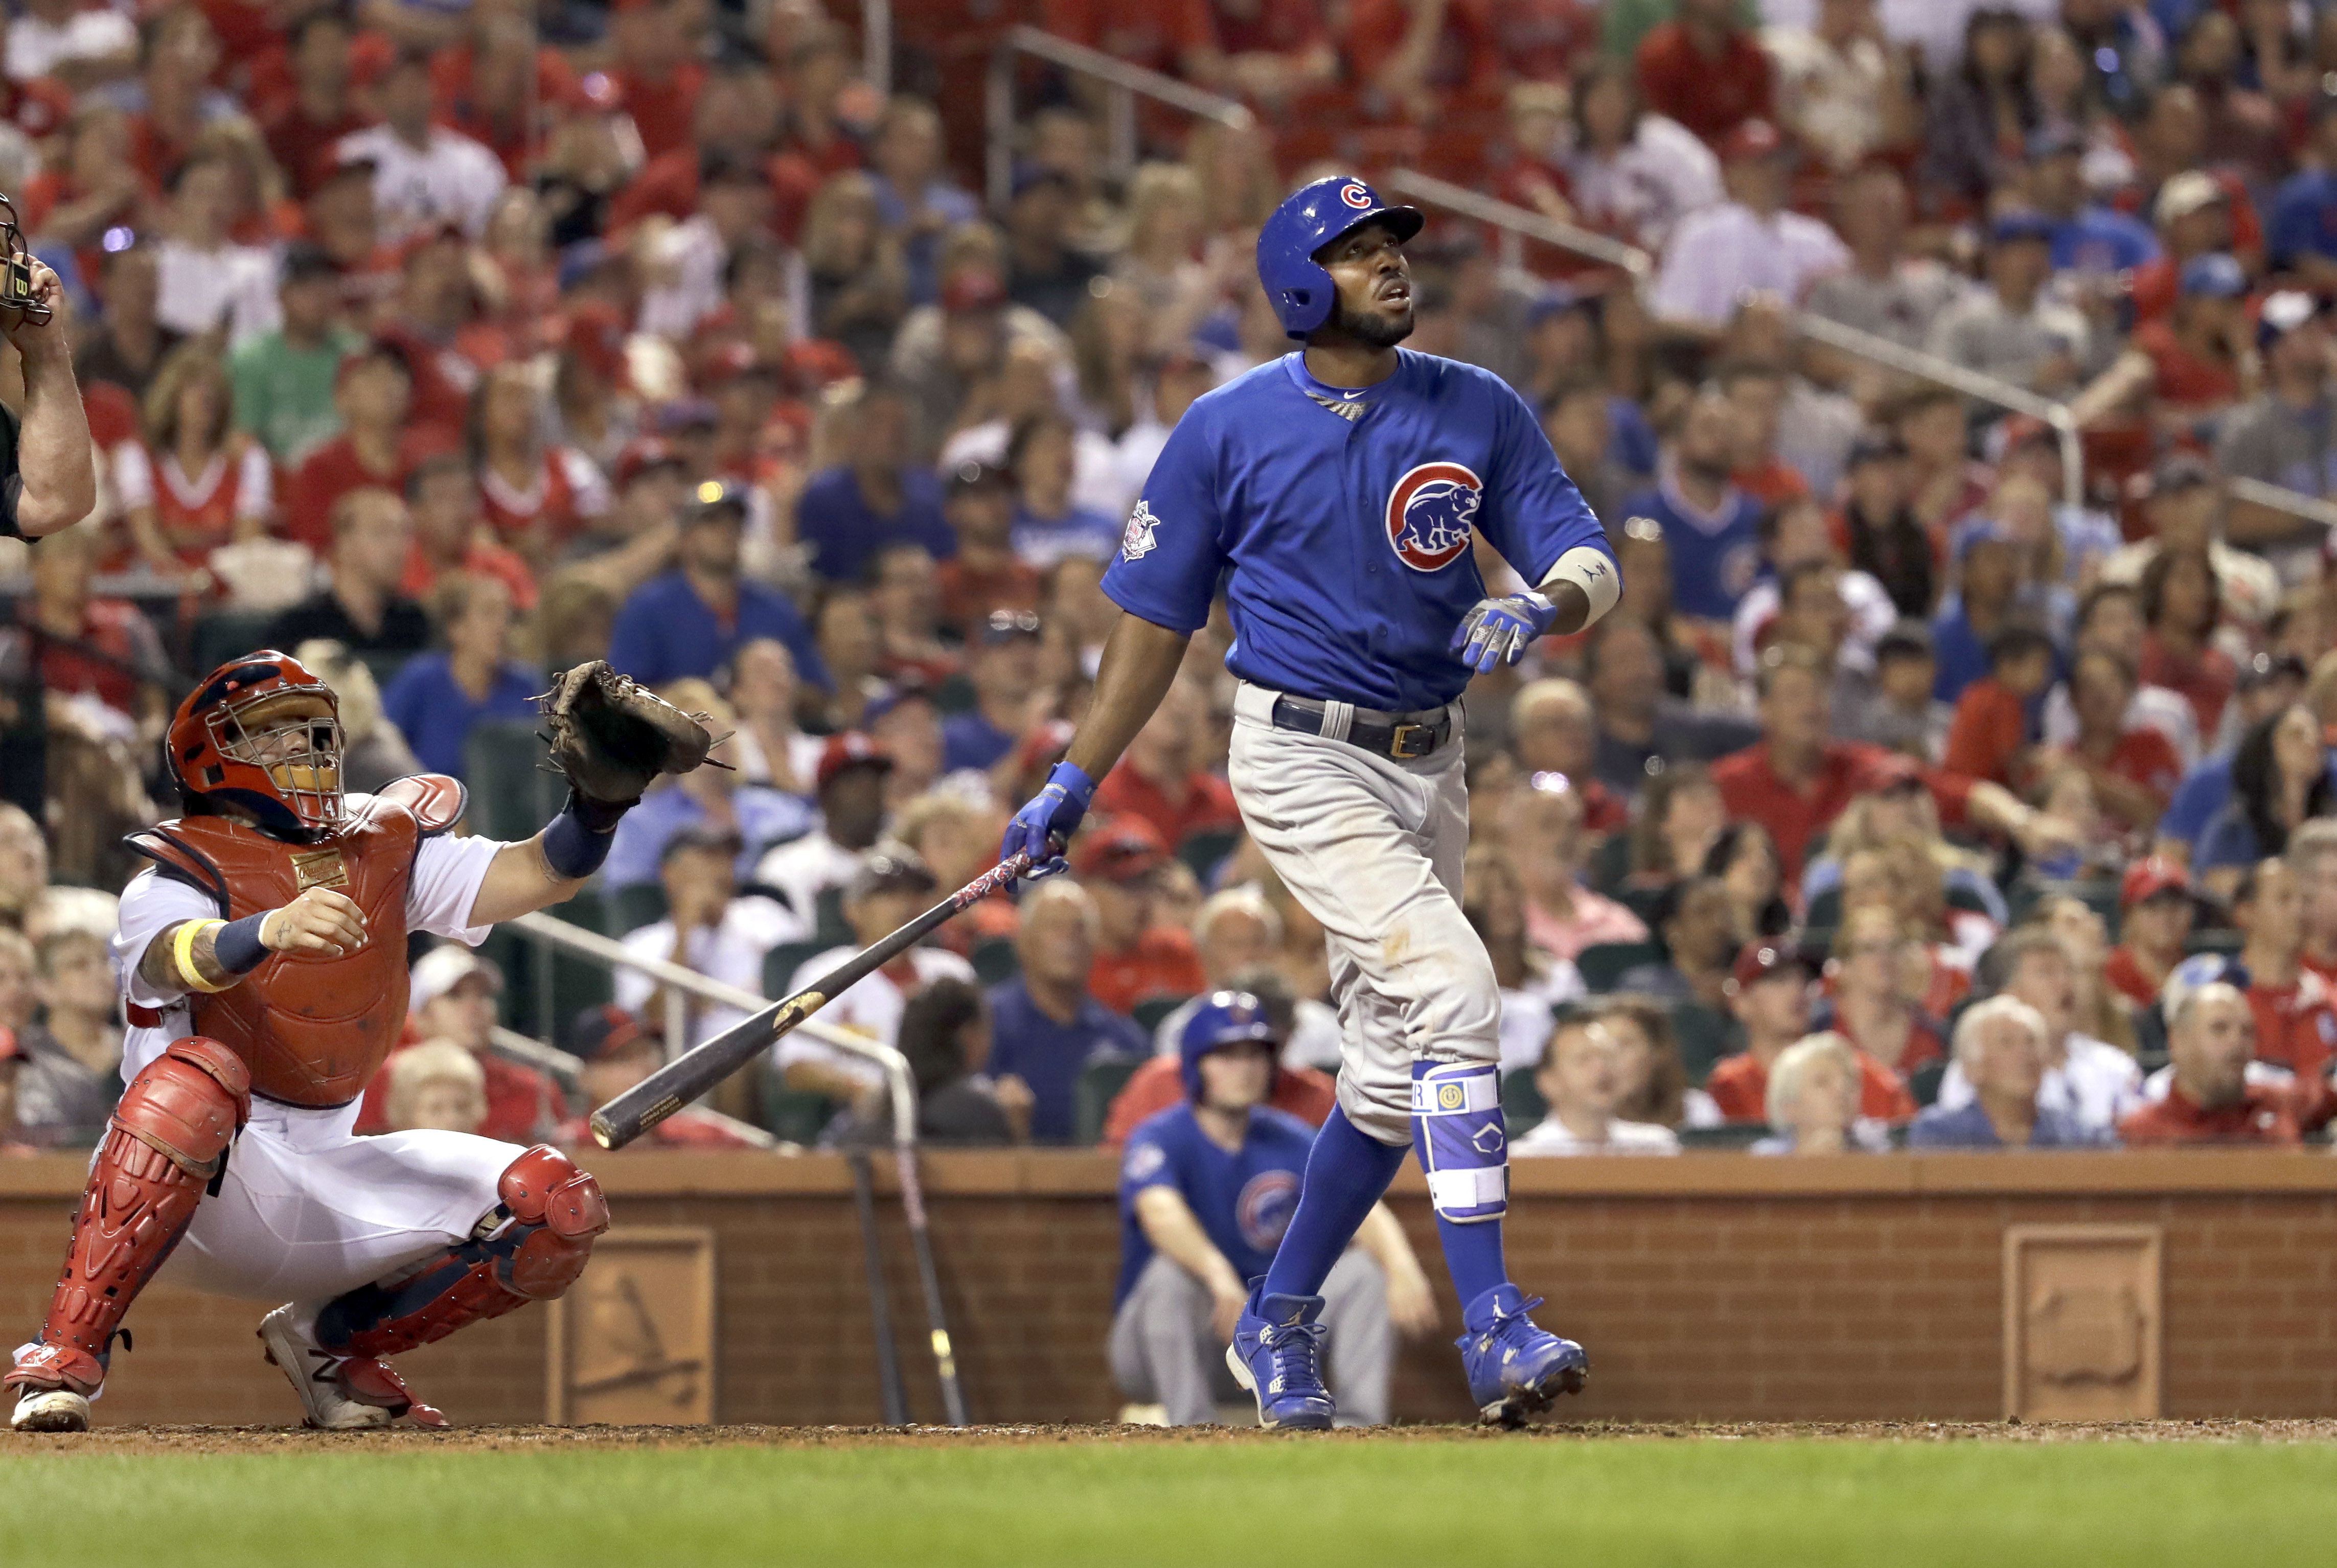 Chicago Cubs' Dexter Fowler, right, and St. Louis Cardinals catcher Yadier Molina watch Fowler's two-run home run during the fifth inning of a baseball game Monday, Sept. 12, 2016, in St. Louis. (AP Photo/Jeff Roberson)